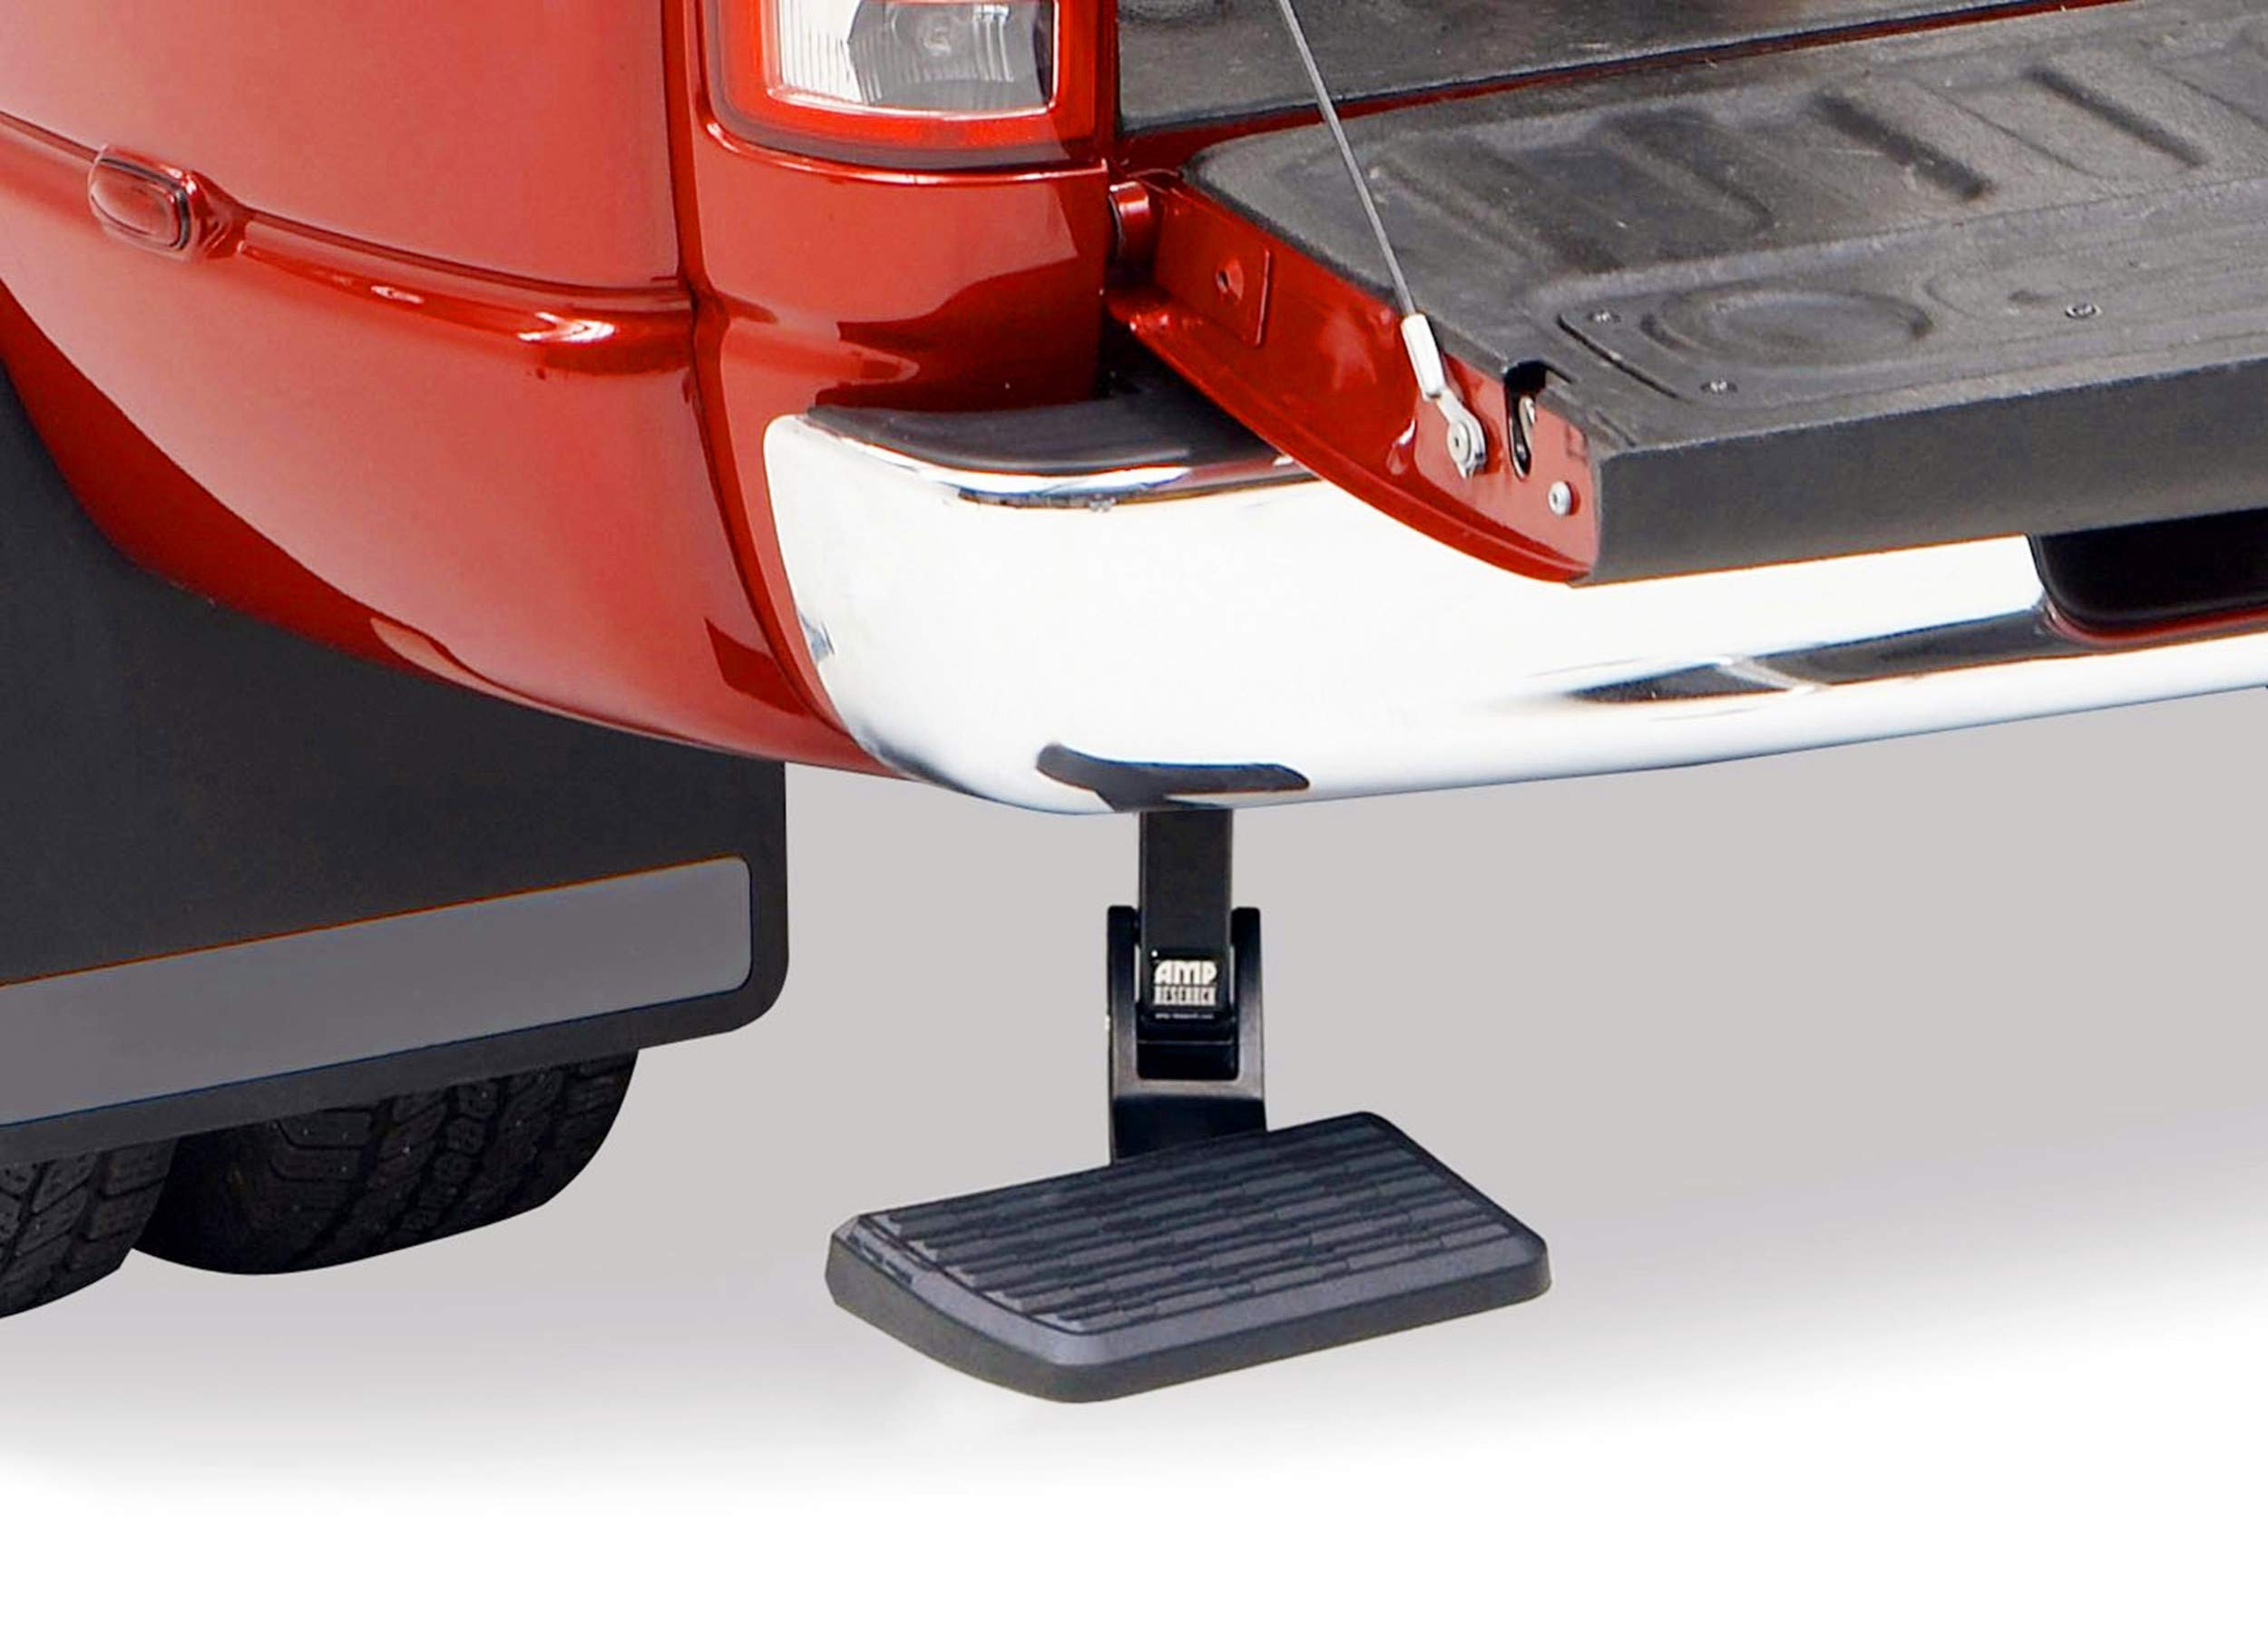 MKING 75306-01A BedStep Retractable Bumper Step for 2009-2018 Ram 1500, 2010-2018 Ram 2500/3500 (Excludes Dual Exhaust & EcoDiesel Models) by MKING